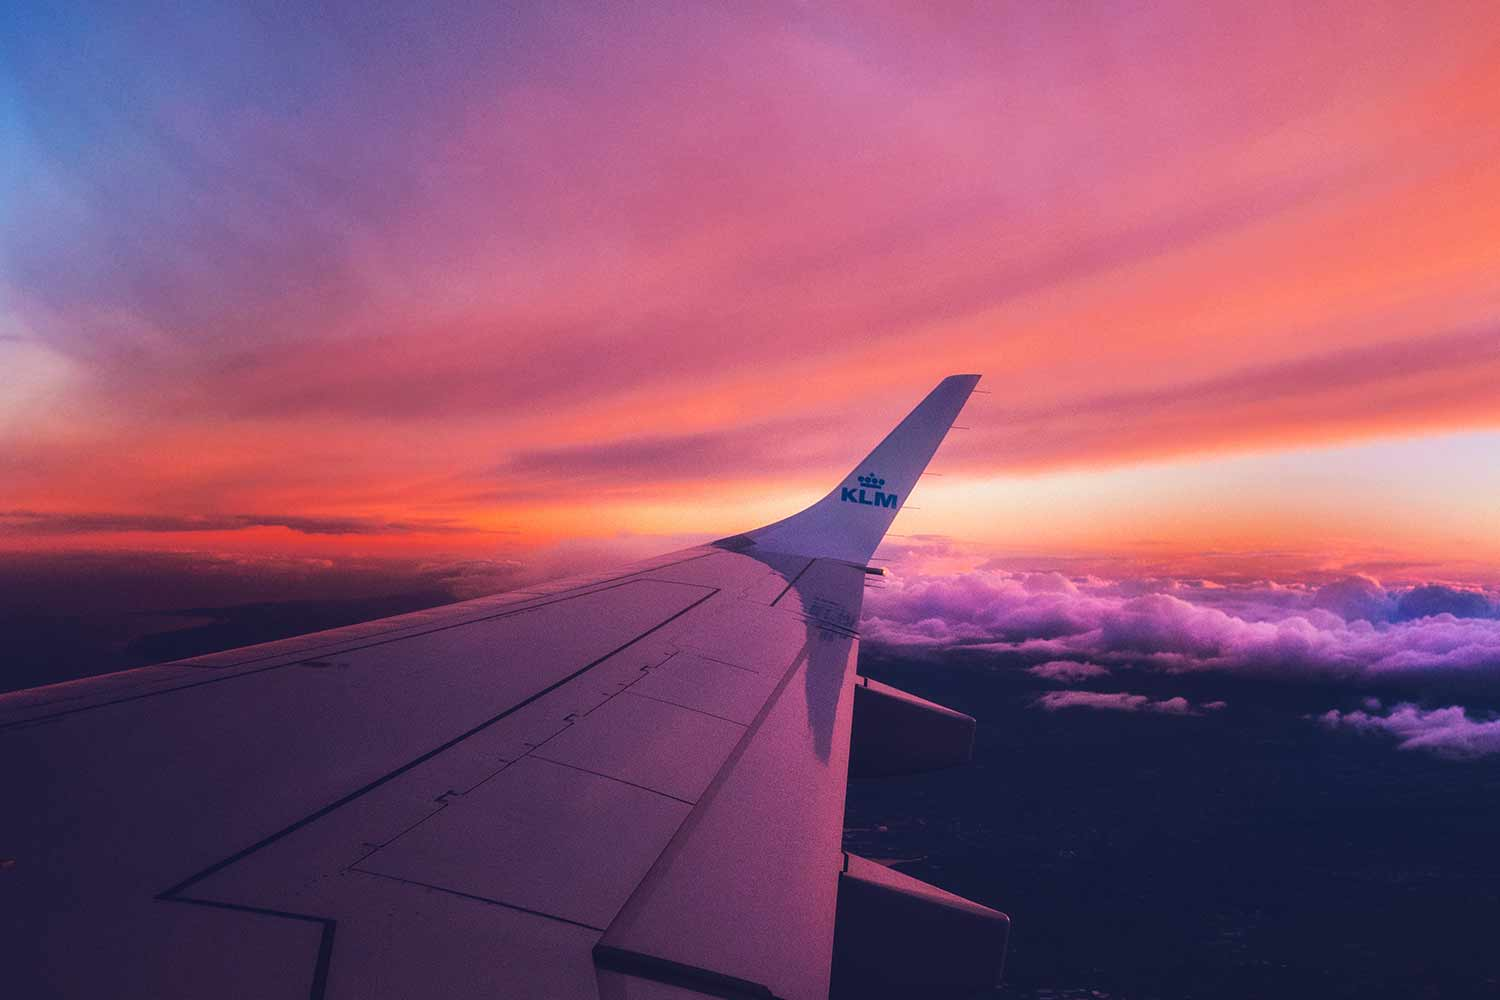 aeroplane wing with sunset behind